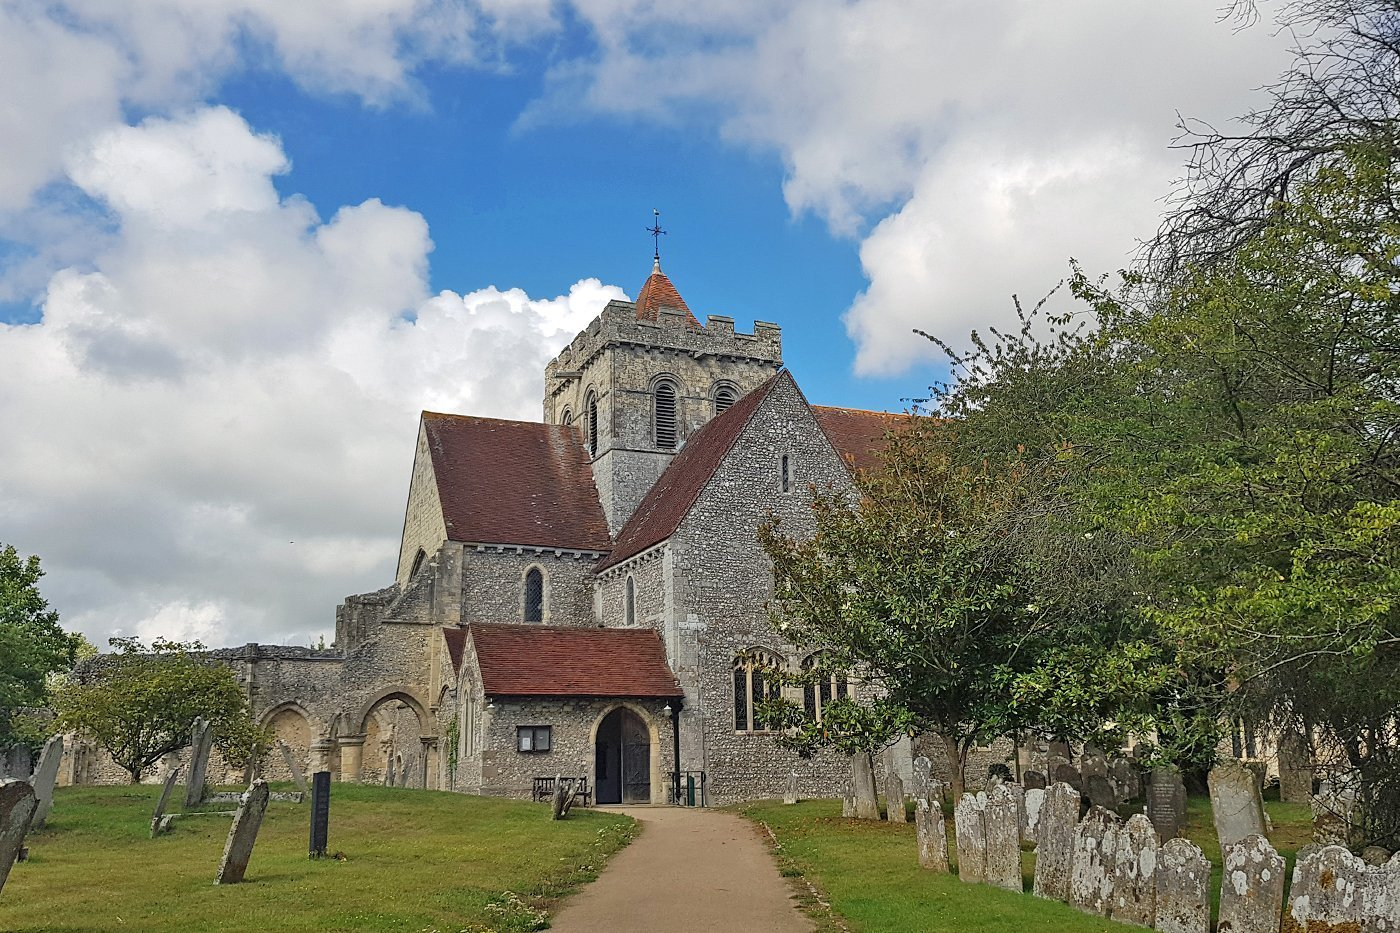 12th century Sussex church